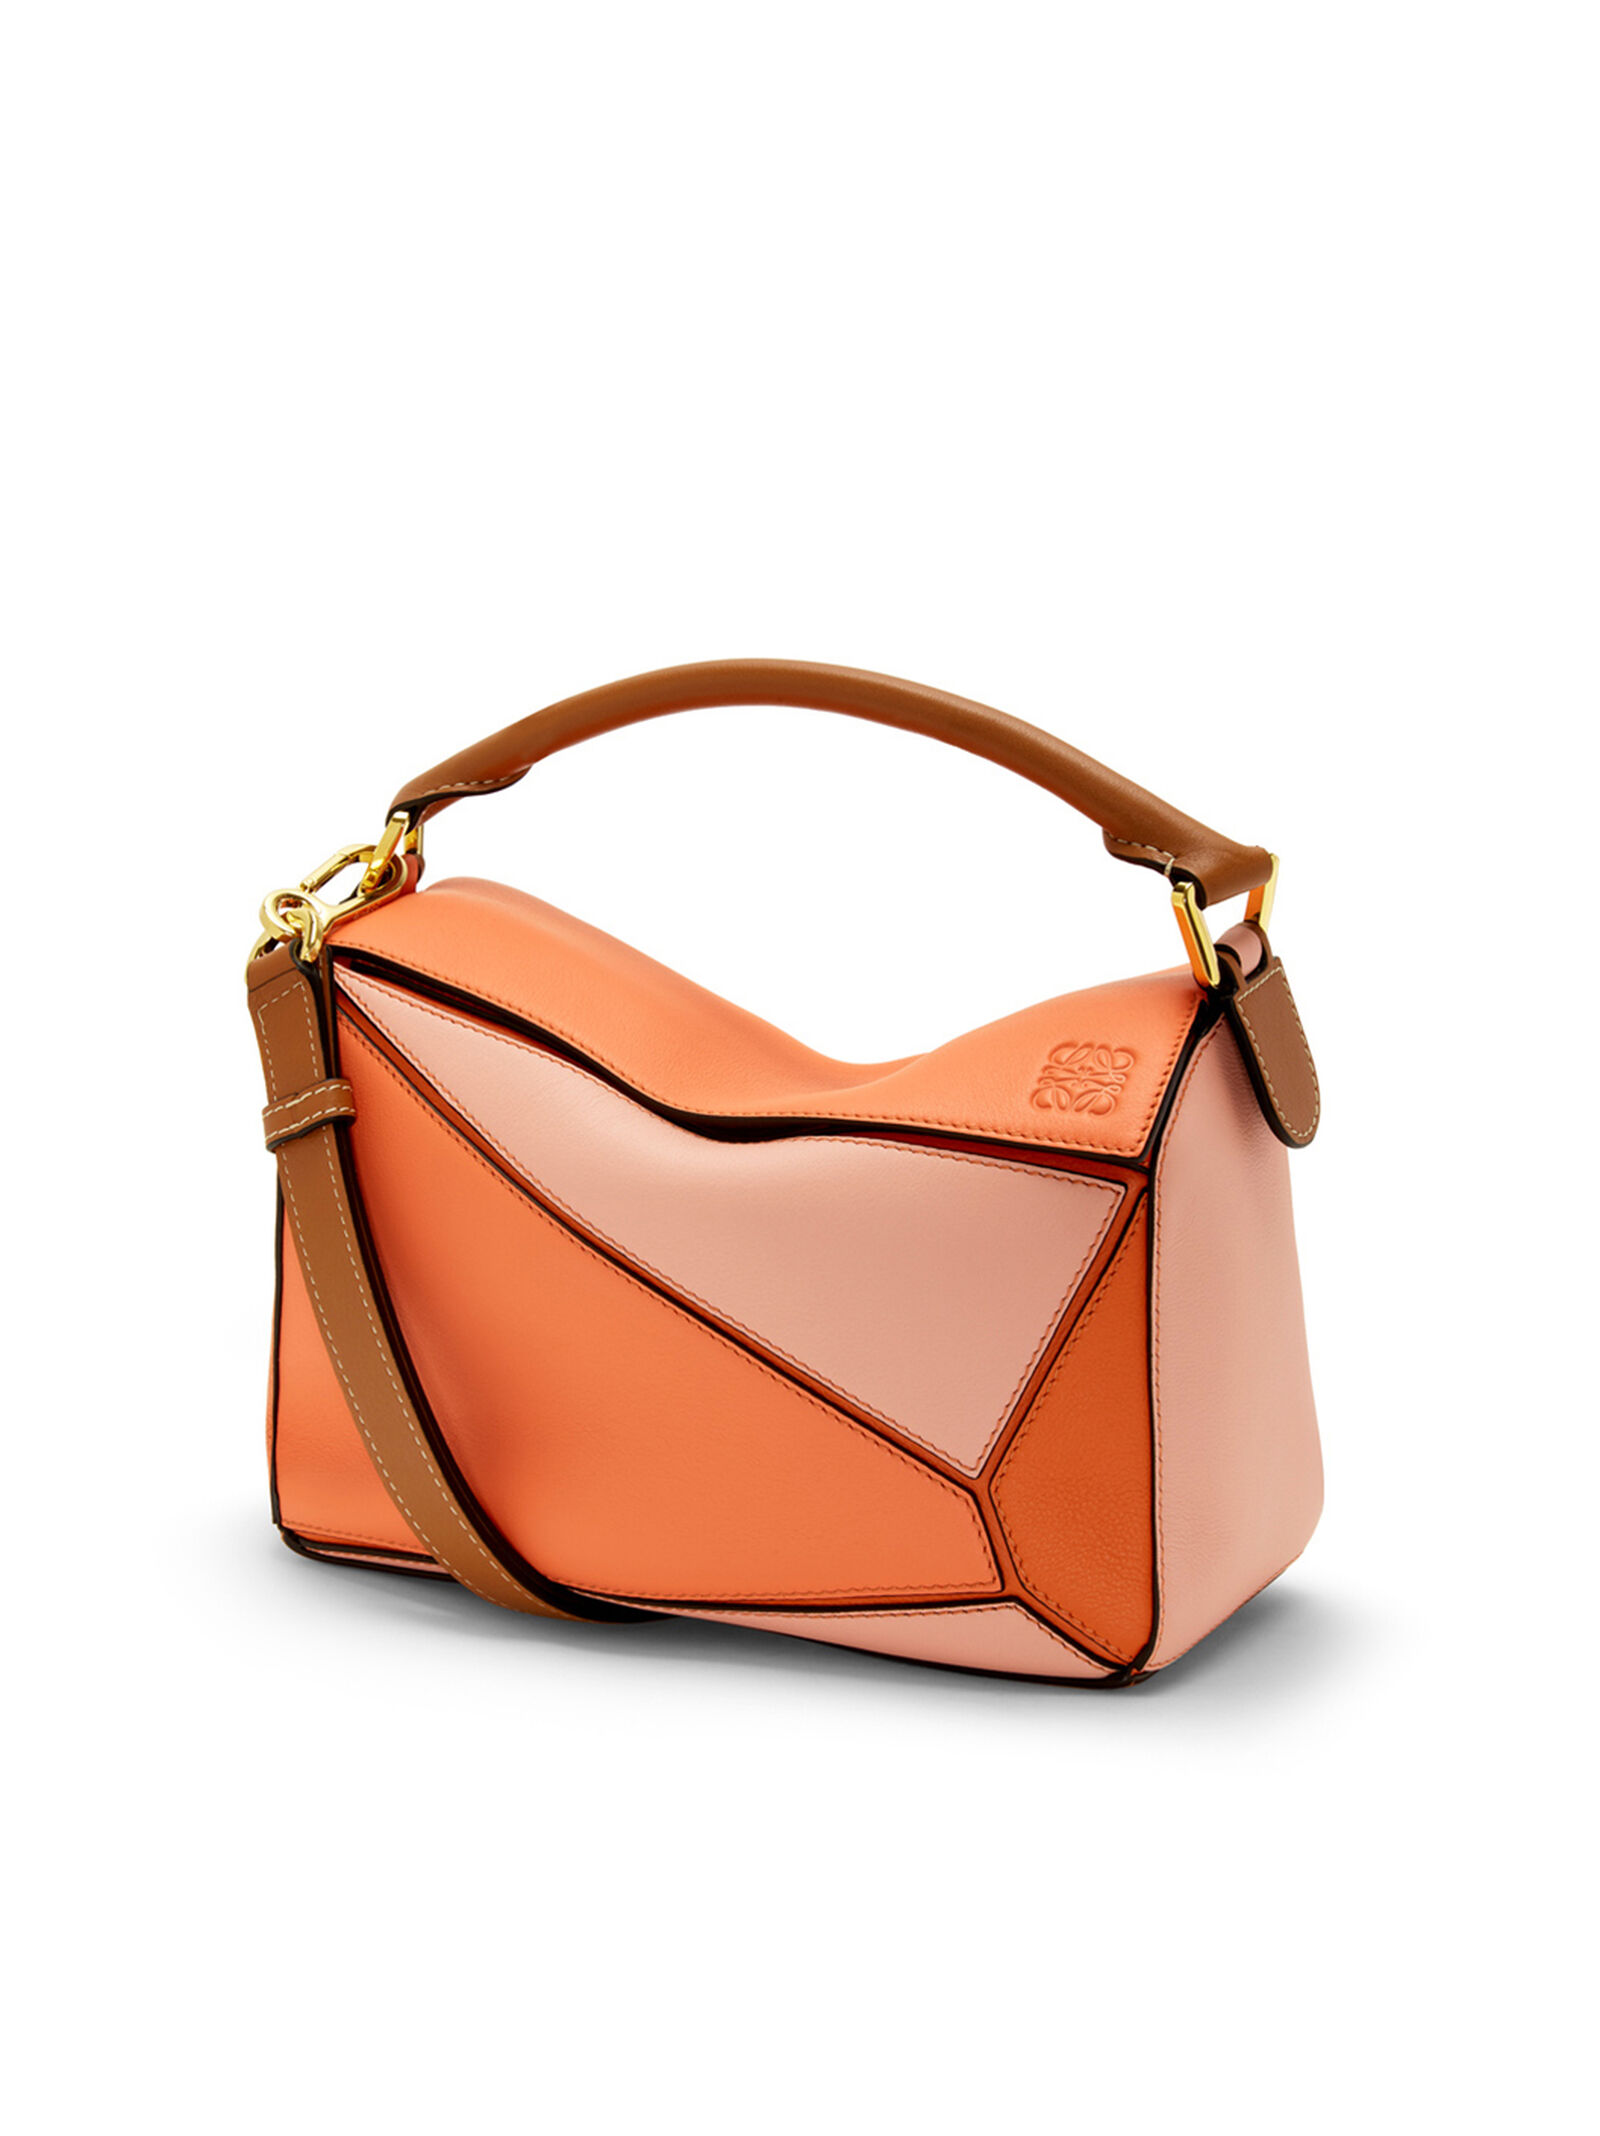 LOEWE official website – luxury clothes and accessories 84dad2ee20